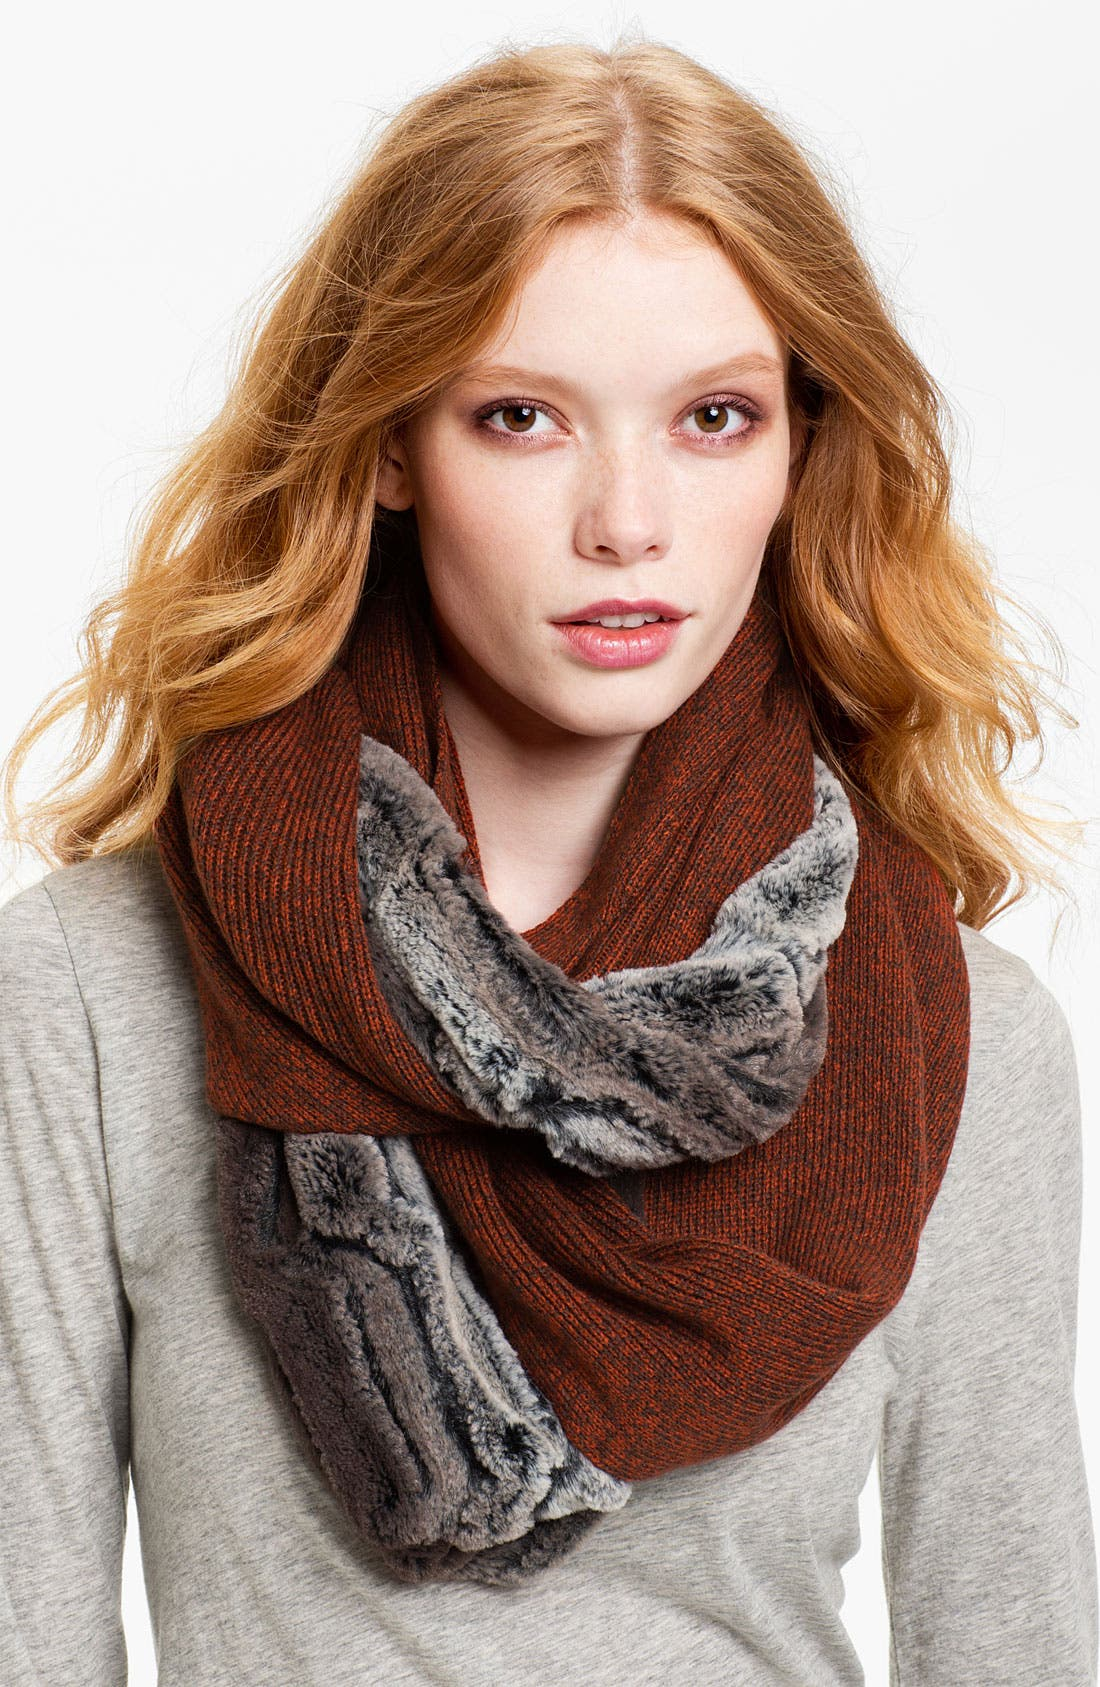 Alternate Image 1 Selected - Collection XIIX 'Piper' Faux Fur & Marled Knit Infinity Scarf